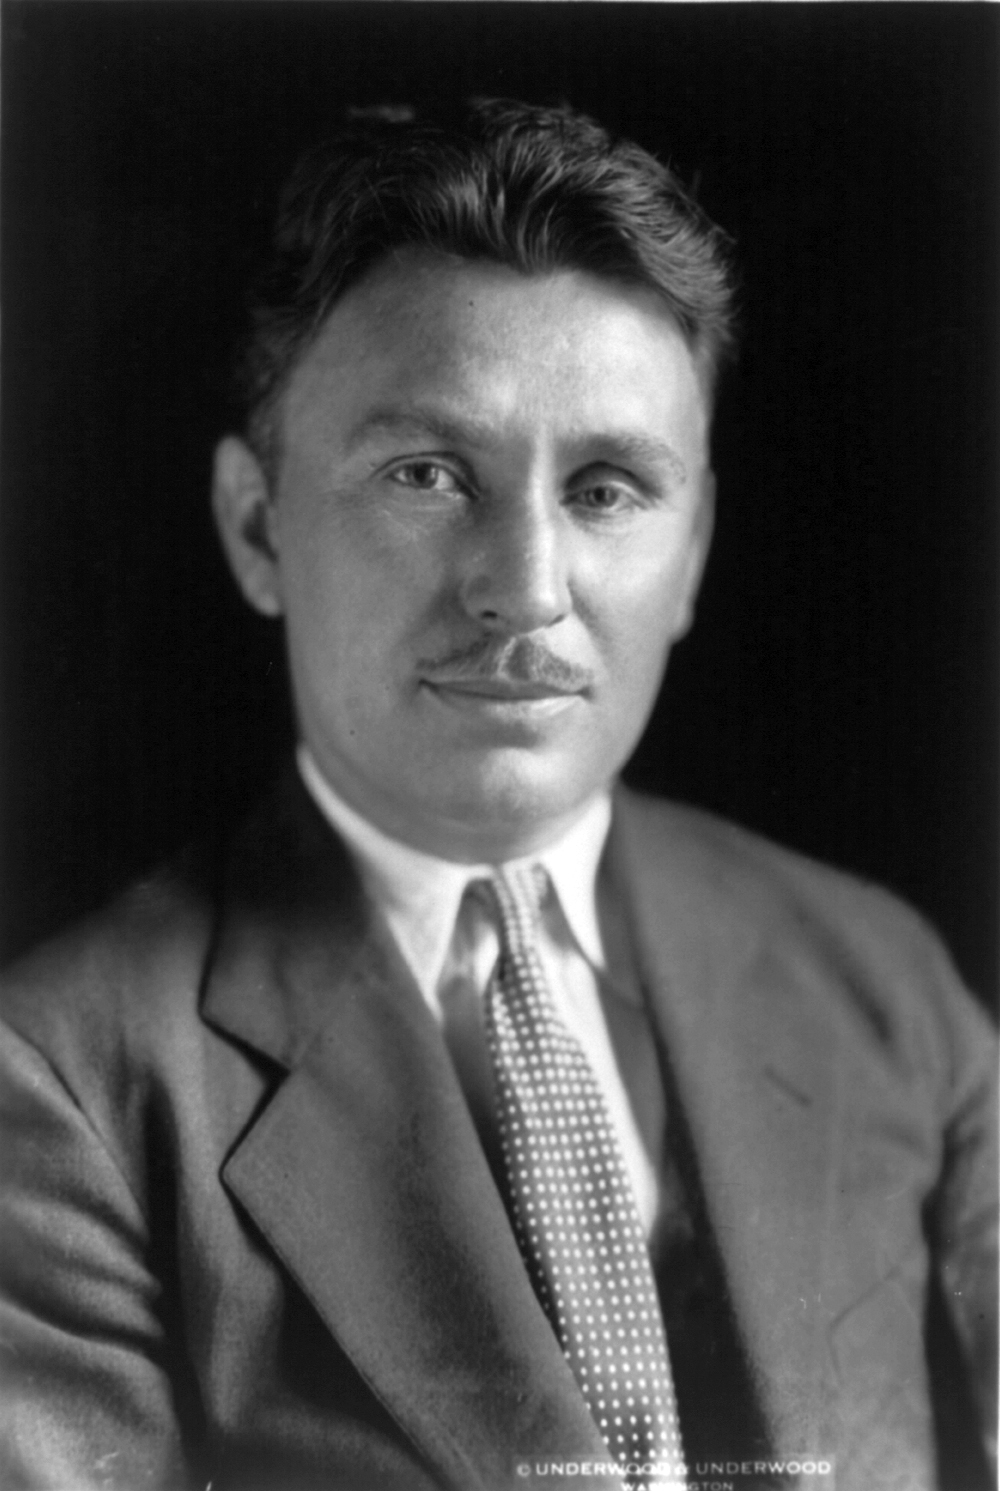 Wiley: Wiley Post